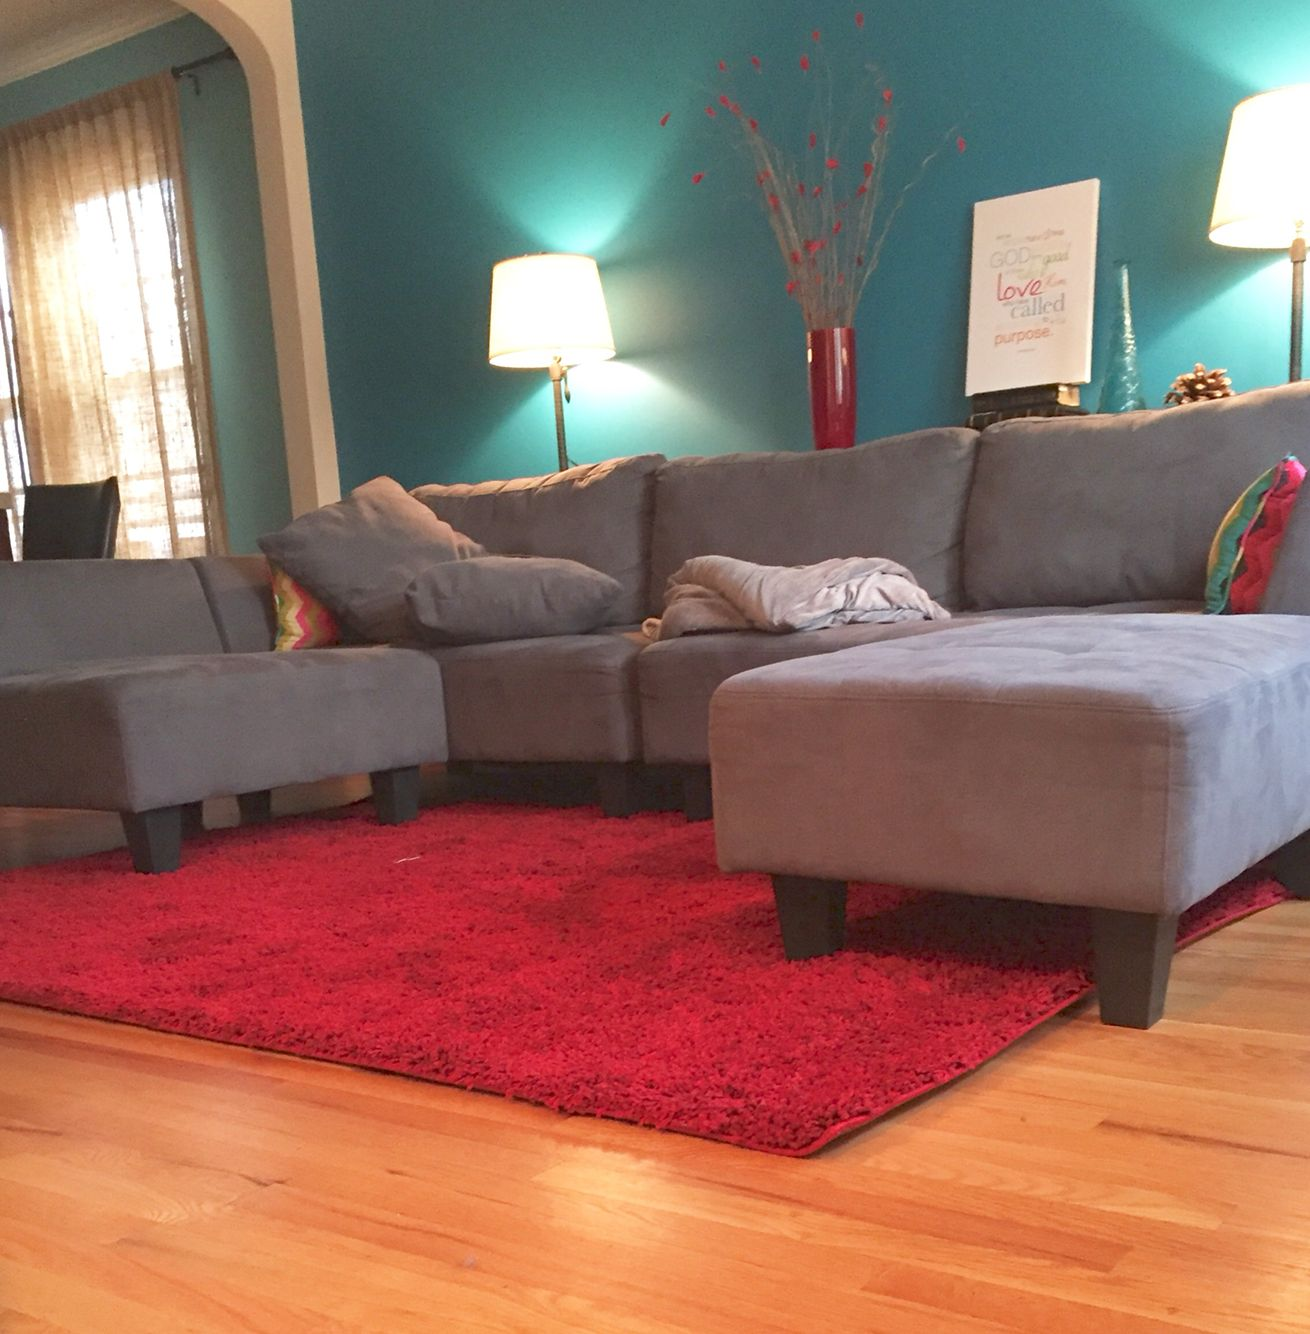 Lovely Living Room Idea: Teal Blue Wall, Grey Couch, Ruby Red Rug